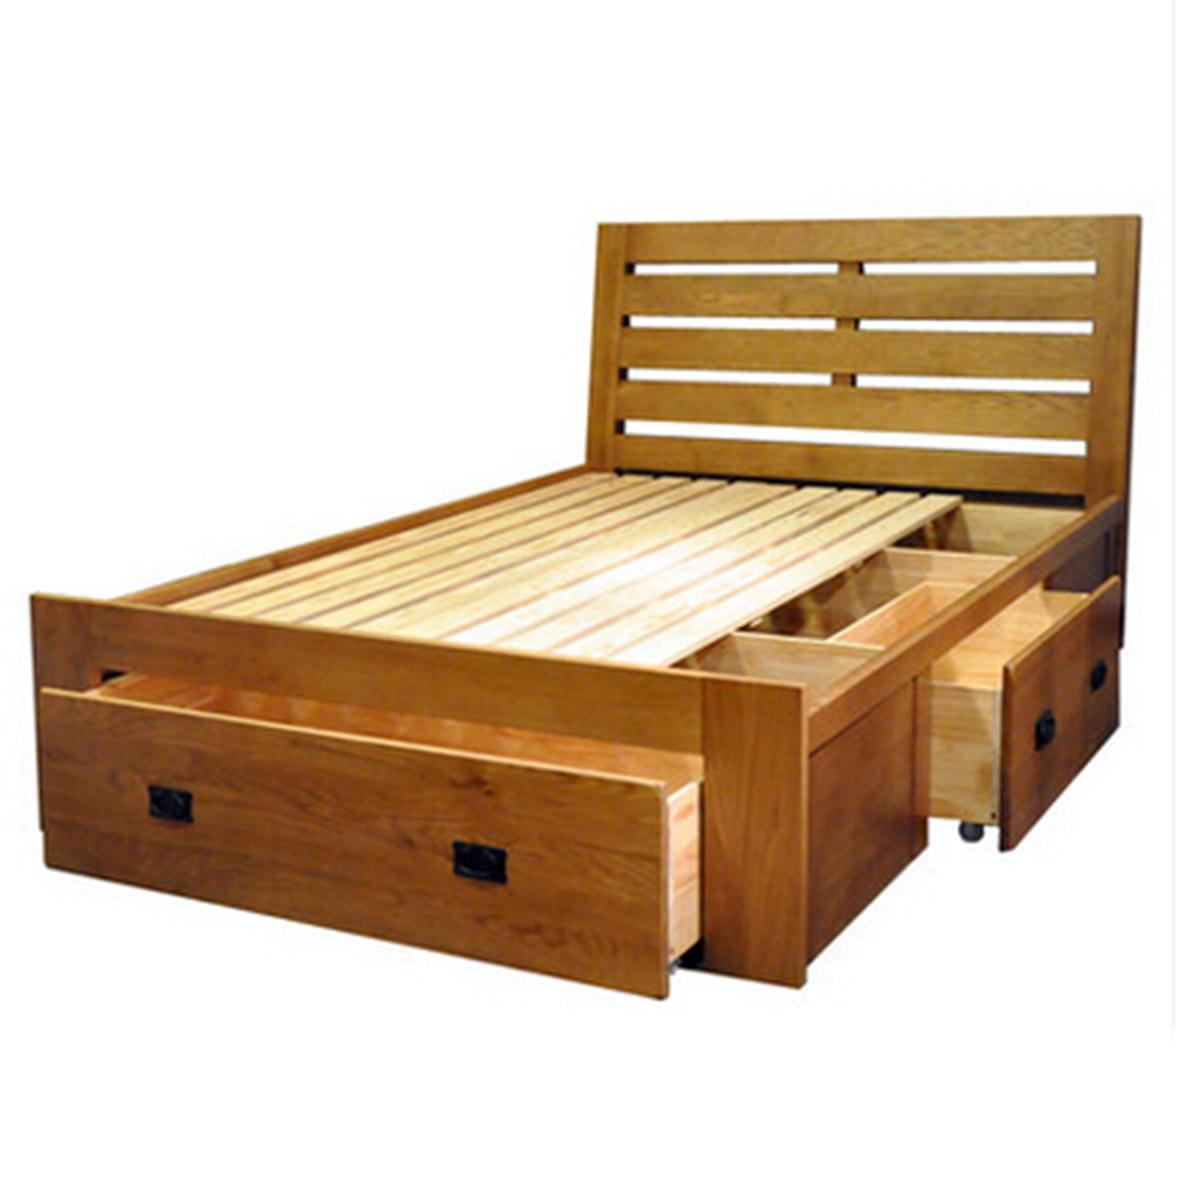 design wooden furniture. Wooden Furniture Box Beds. Looking For Some Good Beds Can Be Difficult, But There Are Actually Quite A Lot Of Them Available Free Design